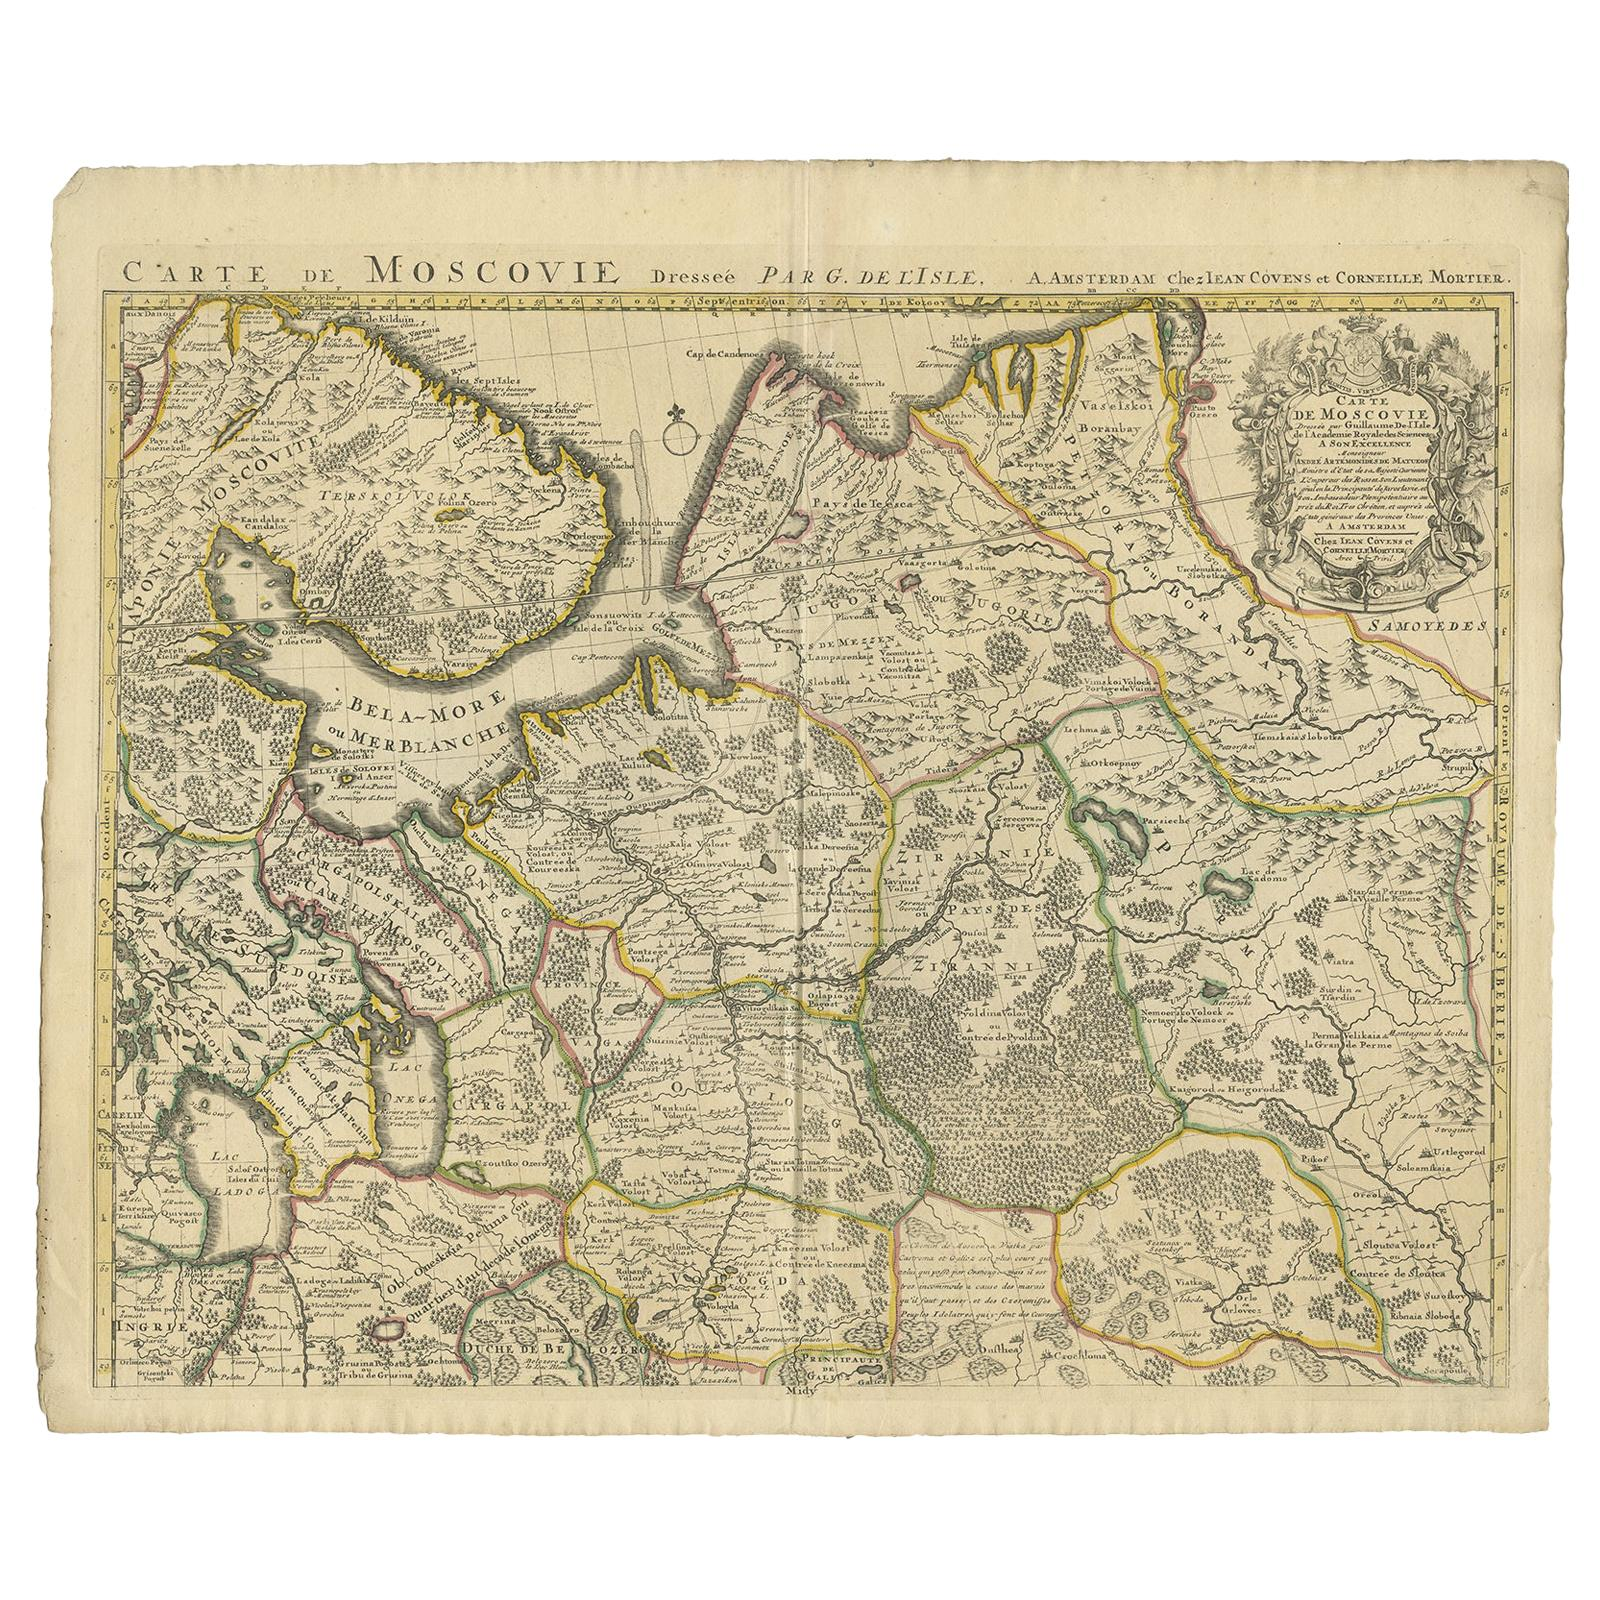 Antique Map of Western Russia by Covens & Mortier, 1740